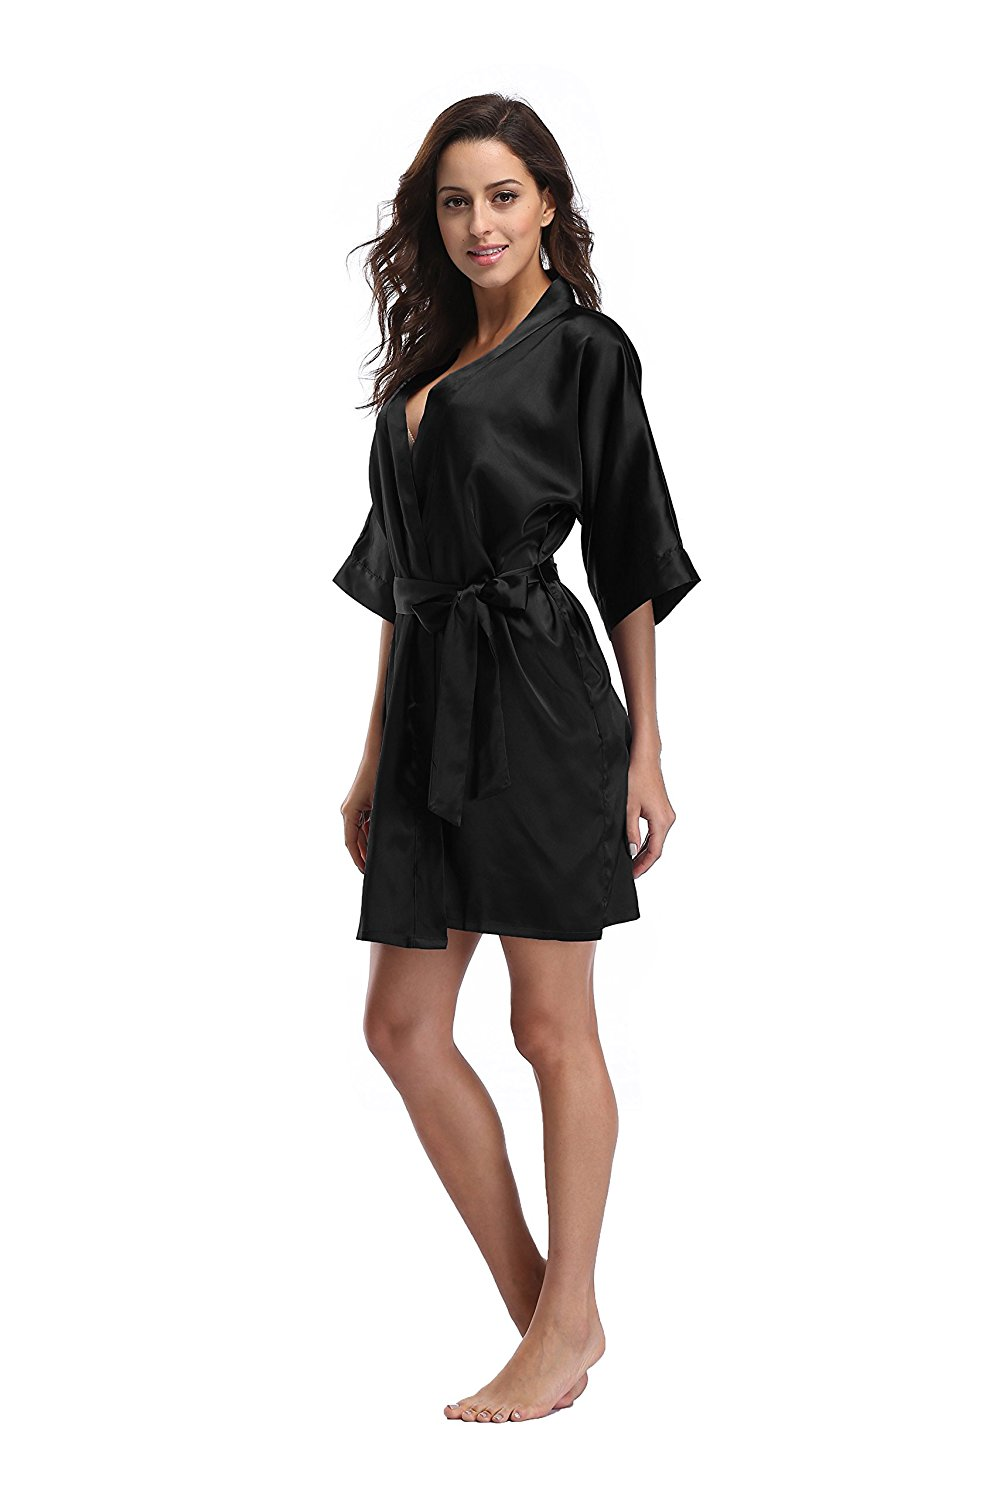 womens robes luvrobes womenu0027s satin kimono robe, solid color, short sjwqviu